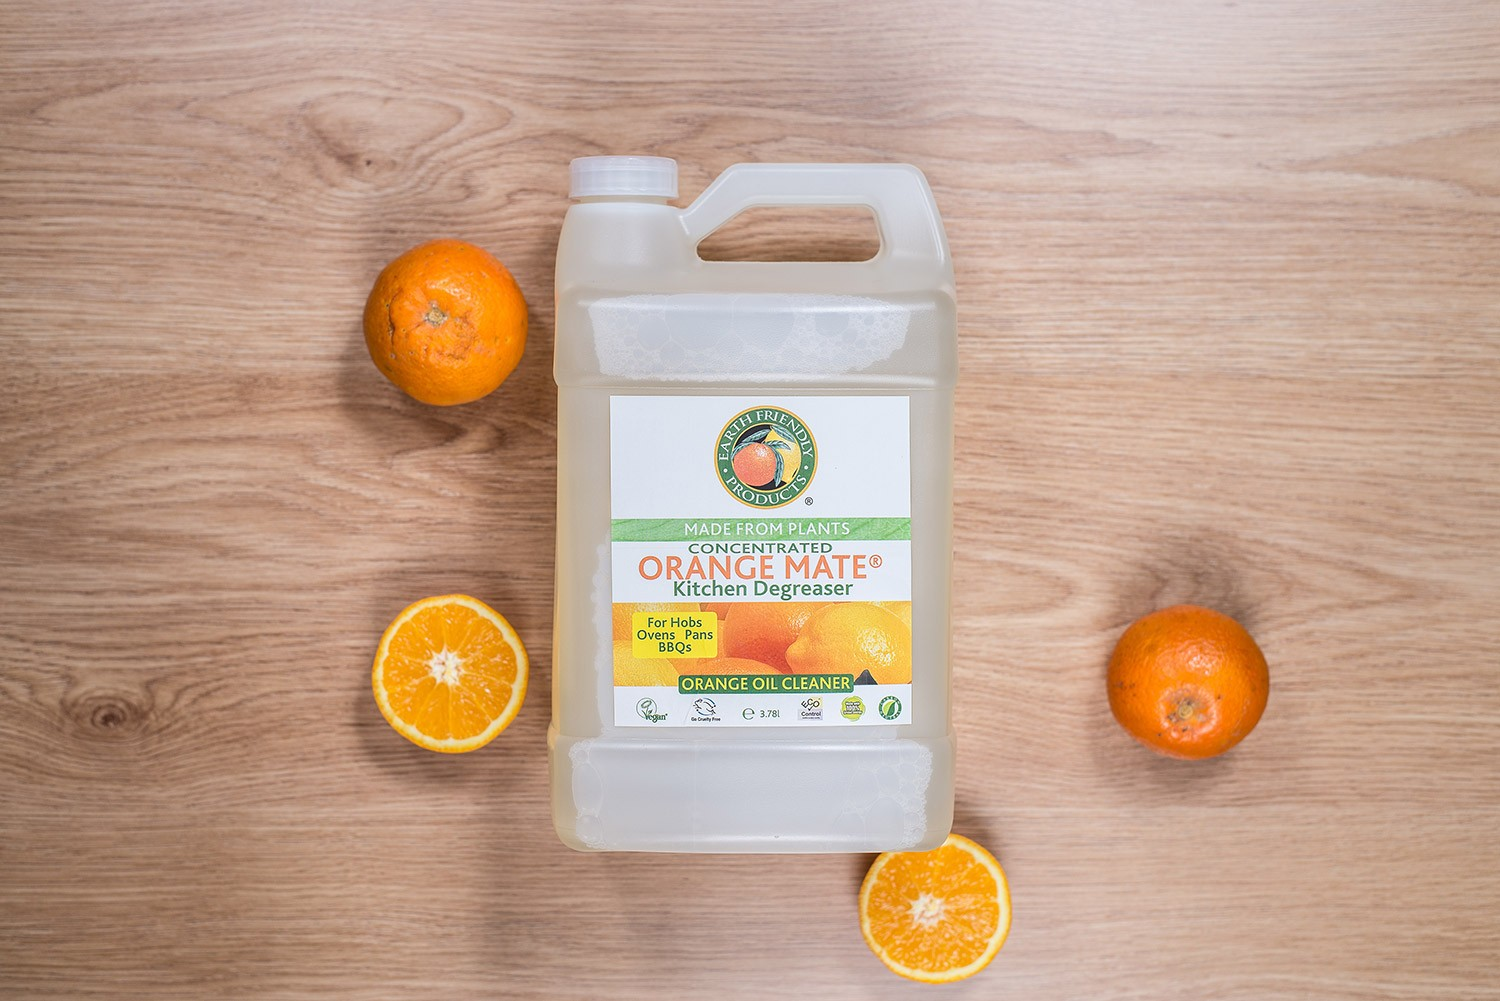 Desengrasante de cocina CONCENTRADO NARANJA 3,78 L Earth Friendly ...